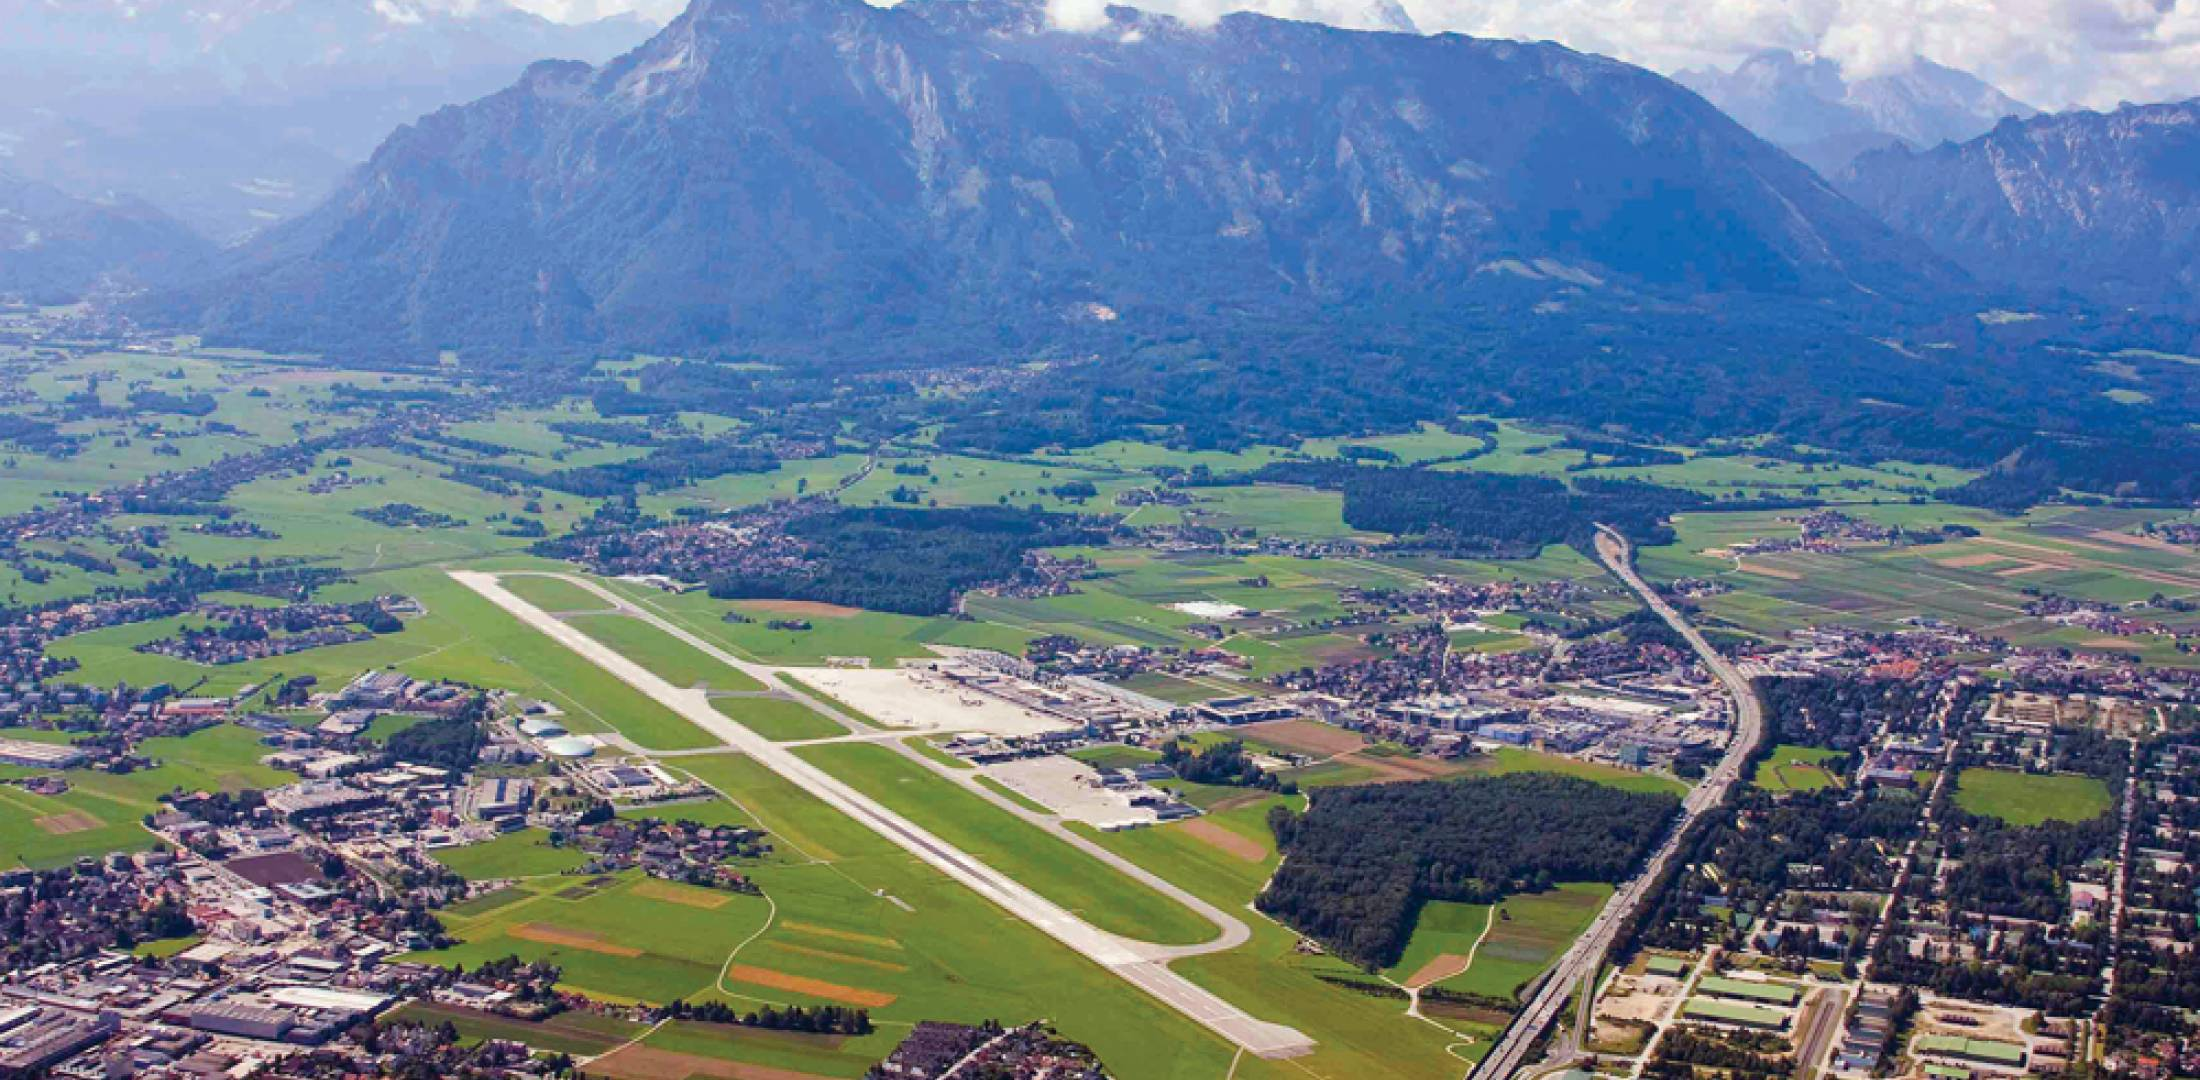 Austria's Salzburg regional airport has seen the number of movements decline as airlines use larger aircraft with lower seat-mile costs.